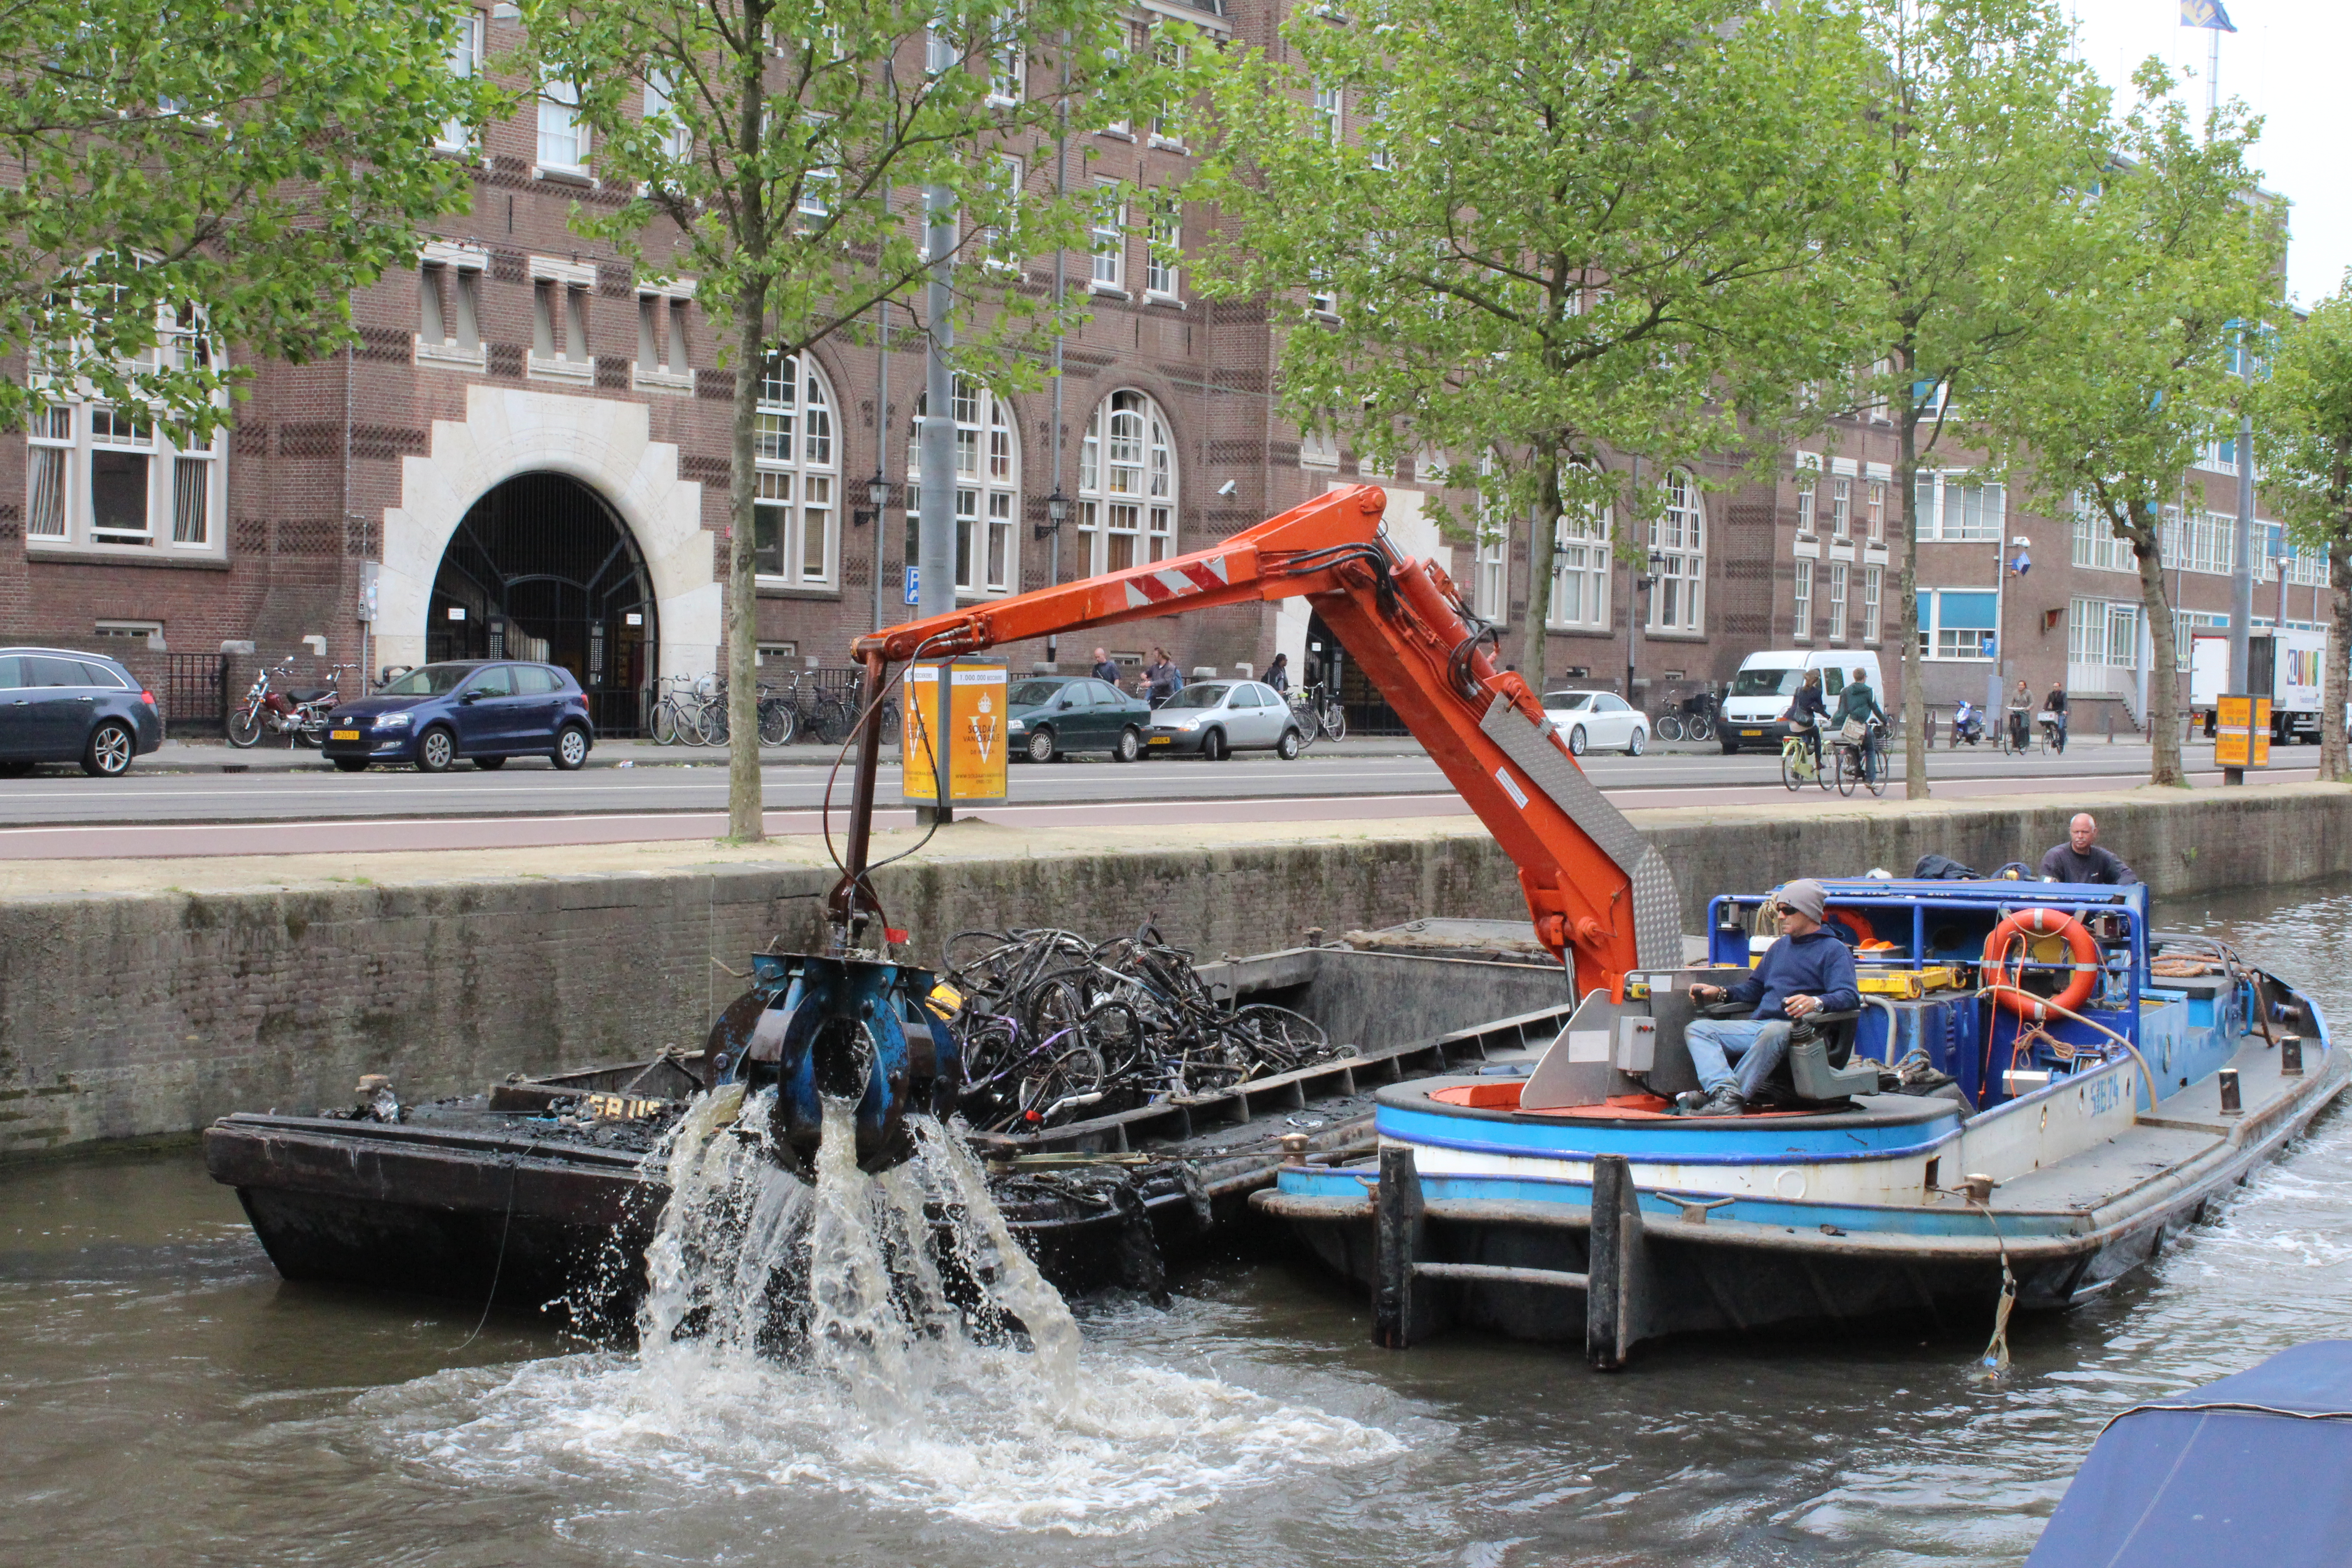 canal cleaning boat bikes